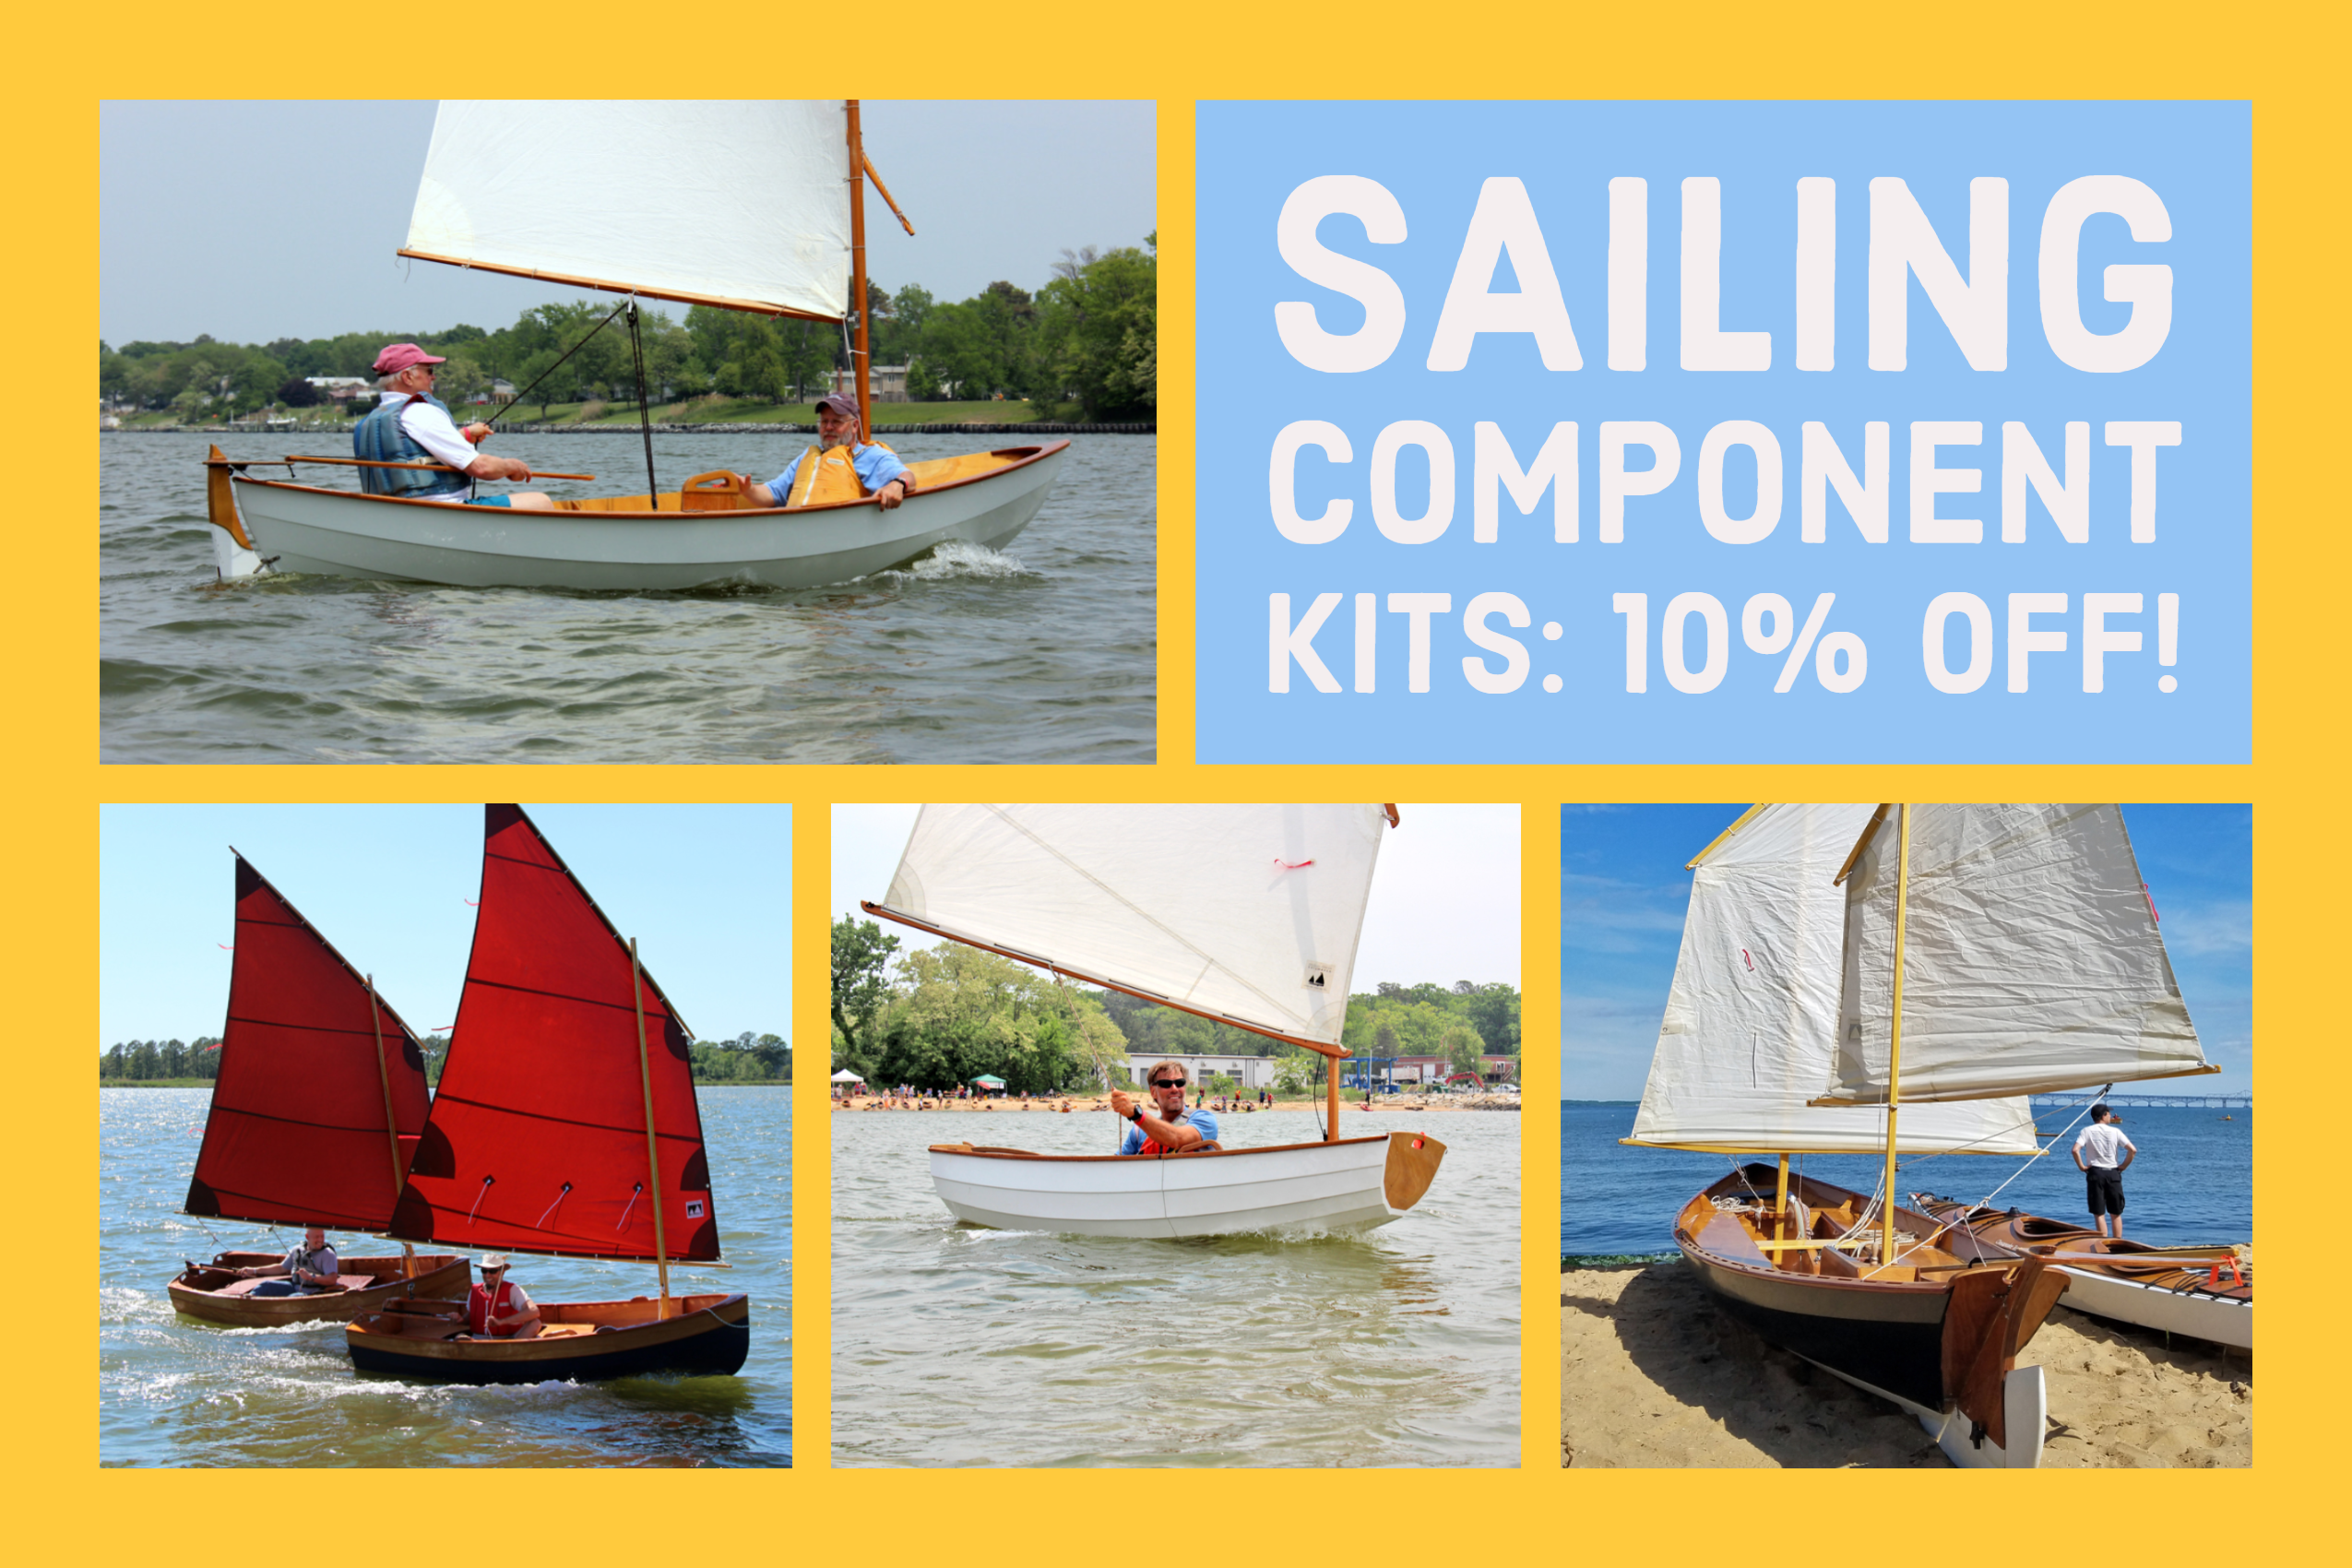 Sailing Component Kits on Sale!